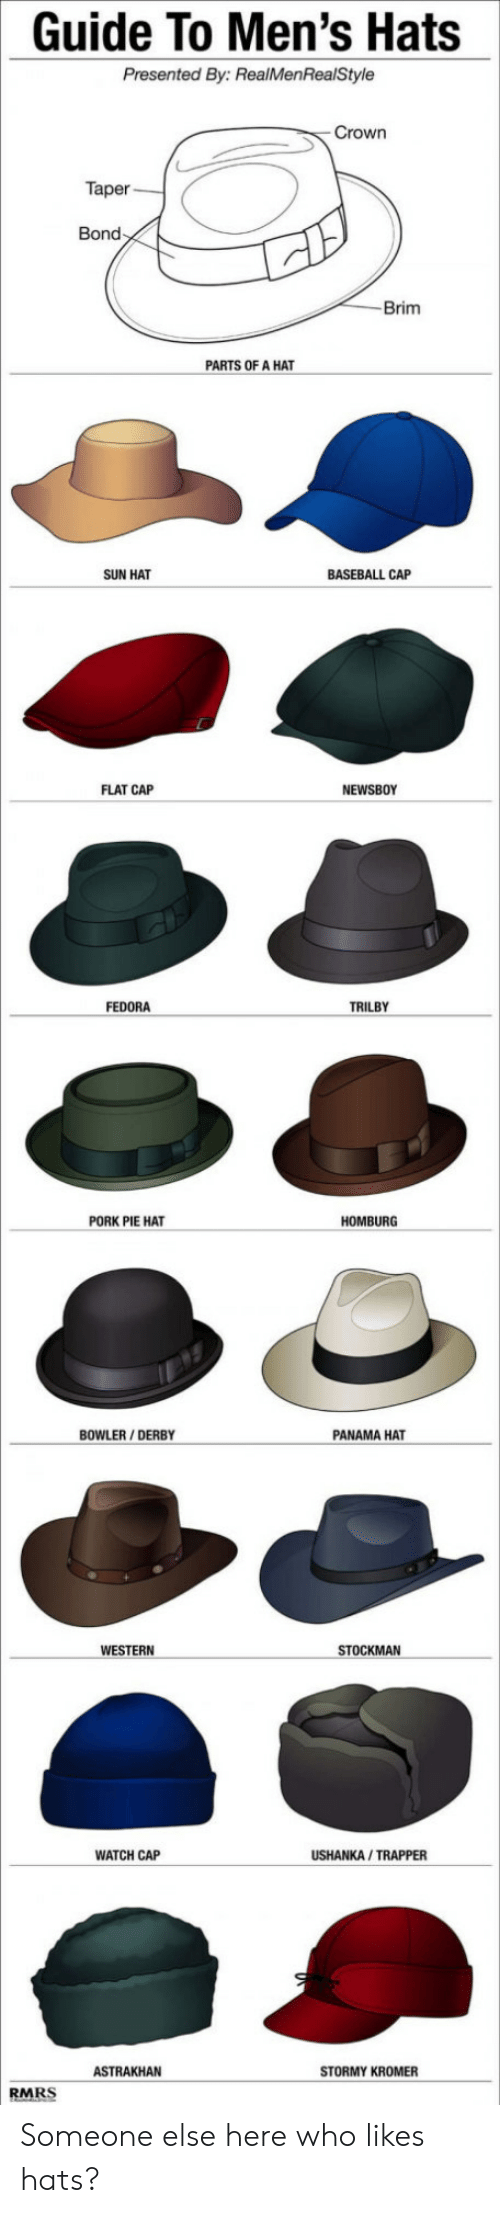 taper: Guide To Men's Hats  Presented By: RealMenRealStyle  Crown  Taper  Brim  PARTS OF A HAT  SUN HAT  BASEBALL CAP  FLAT CAP  NEWSBOY  FEDORA  TRILBY  PORK PIE HAT  HOMBURG  BOWLER/DERBY  PANAMA HAT  WESTERN  STOCKMAN  WATCH CAP  USHANKA/ TRAPPER  ASTRAKHAN  STORMY KROMER  RMRS Someone else here who likes hats?